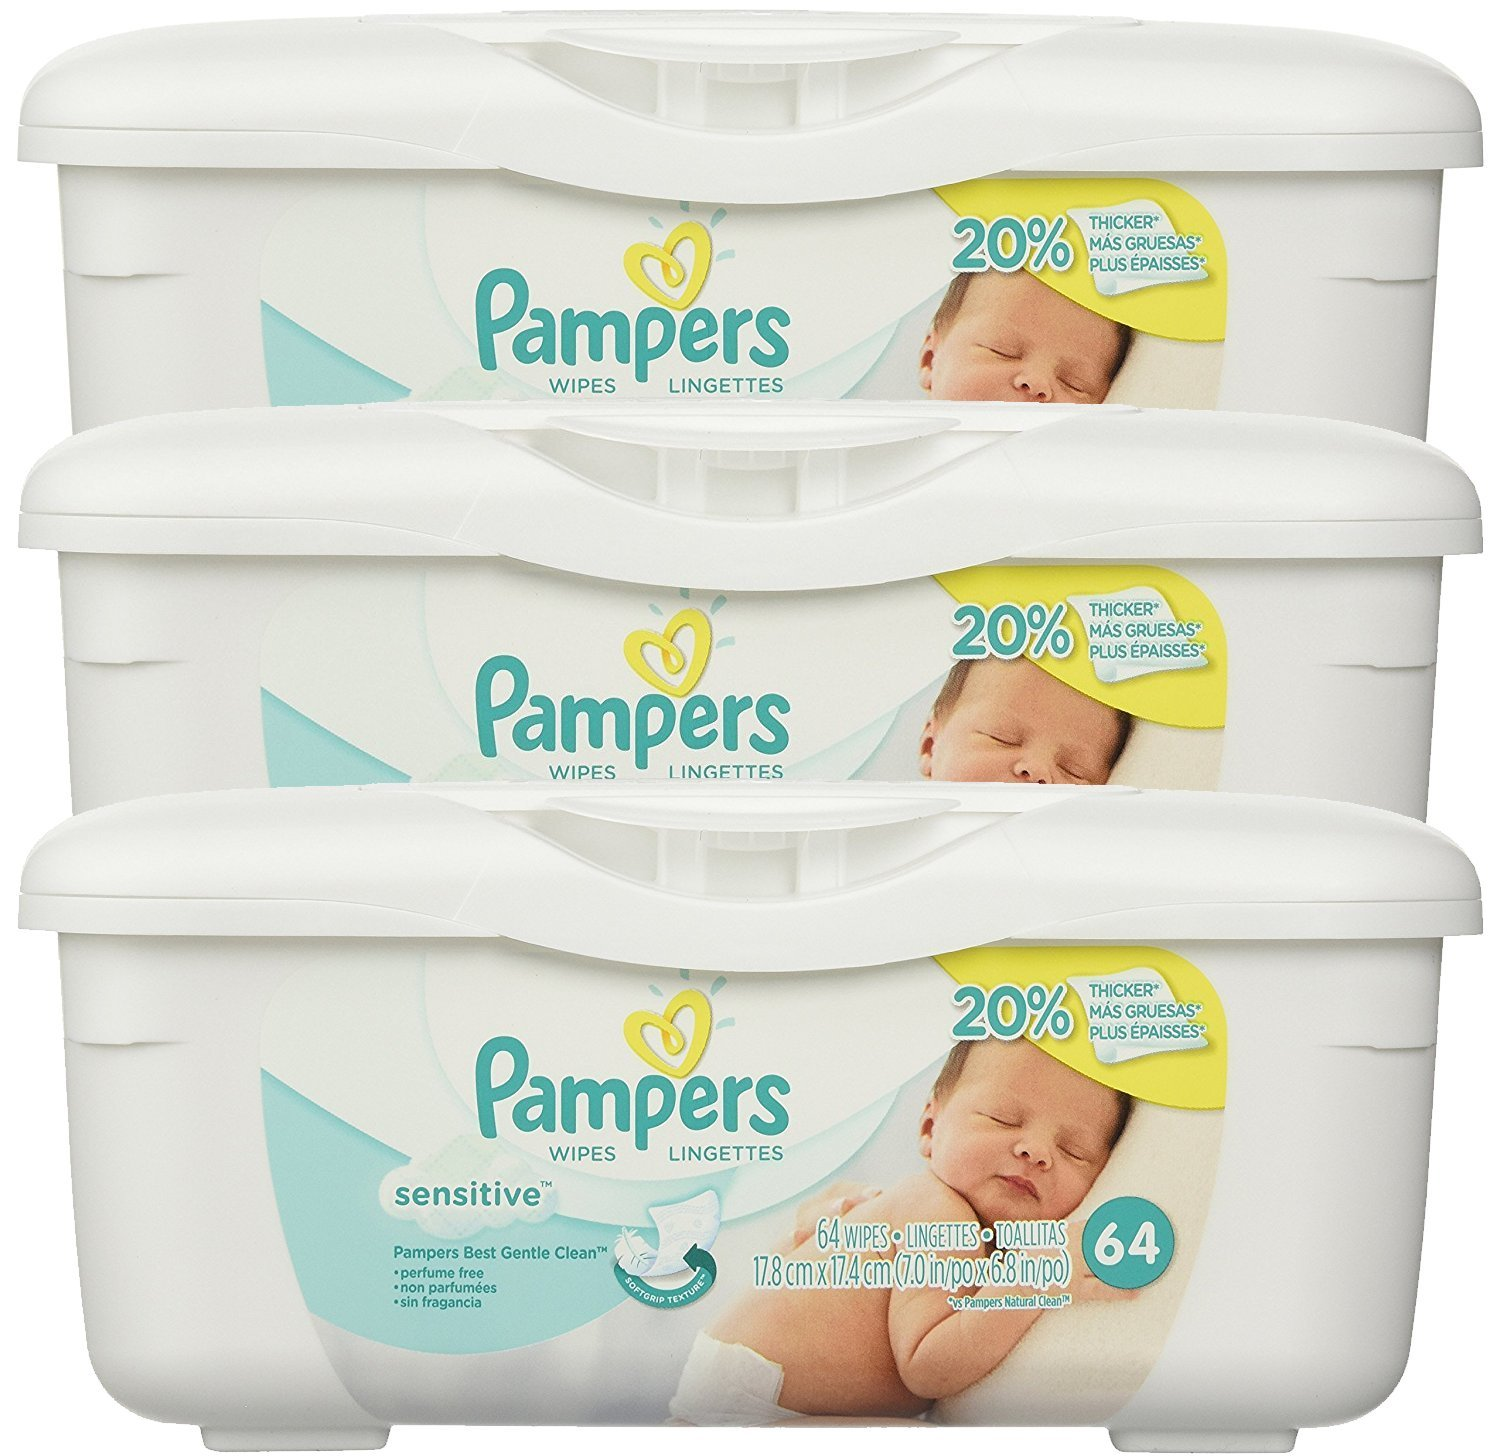 Amazon.com: Pampers Baby Wipes Tub, Sensitive - 64 Wipes/Tub (6-Pack/384 Count, Pampers Sensitive): Health & Personal Care